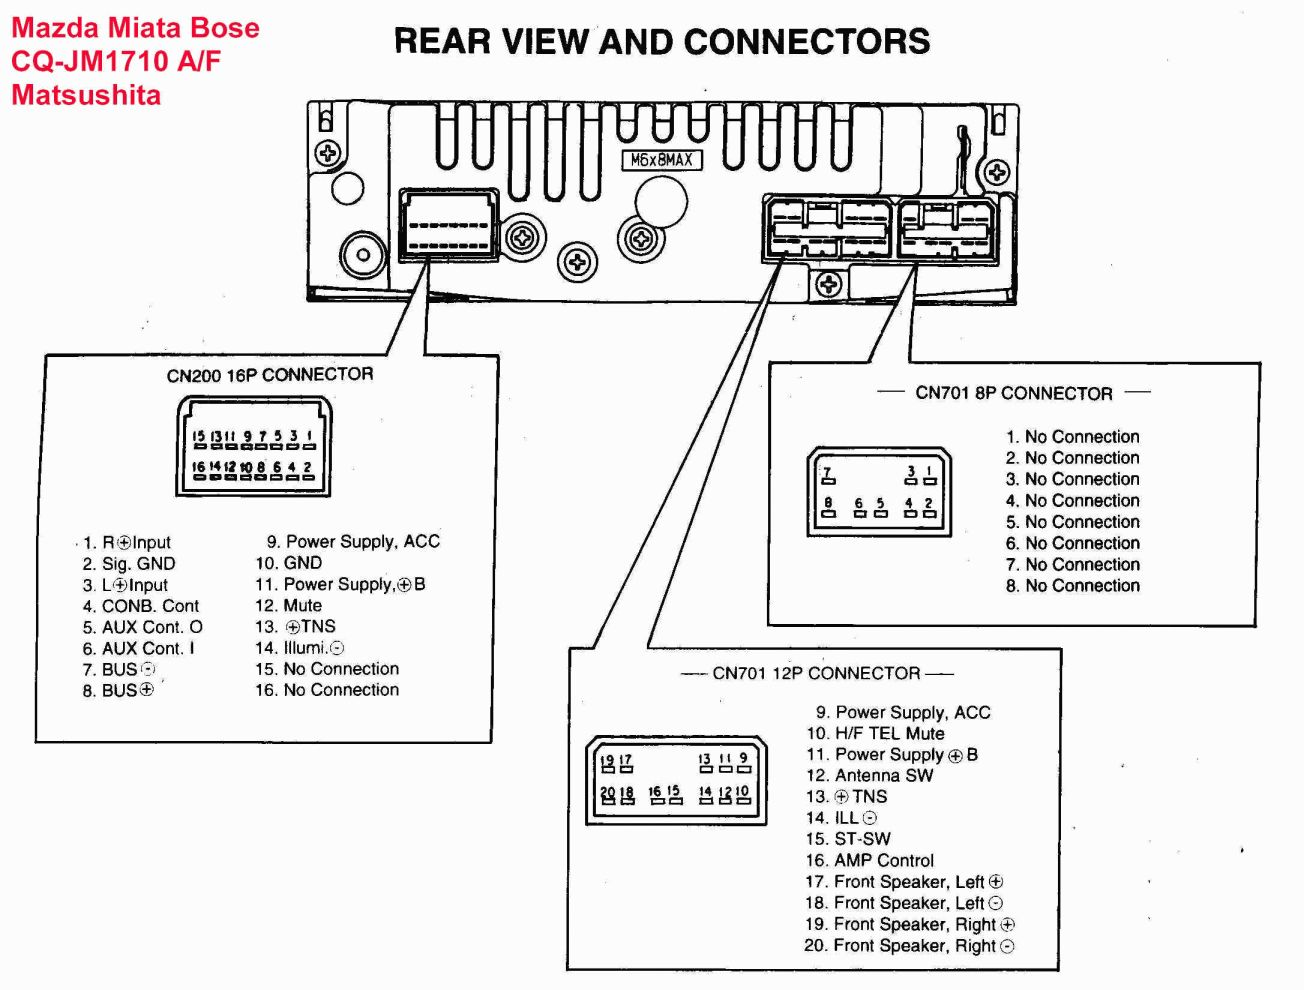 [ZTBE_9966]  15+ 1999 Mazda Protege Car Stereo Wiring Diagram - Car Diagram | Electrical  diagram, Trailer wiring diagram, Car stereo systems | Mazda Wiring Diagram |  | Pinterest